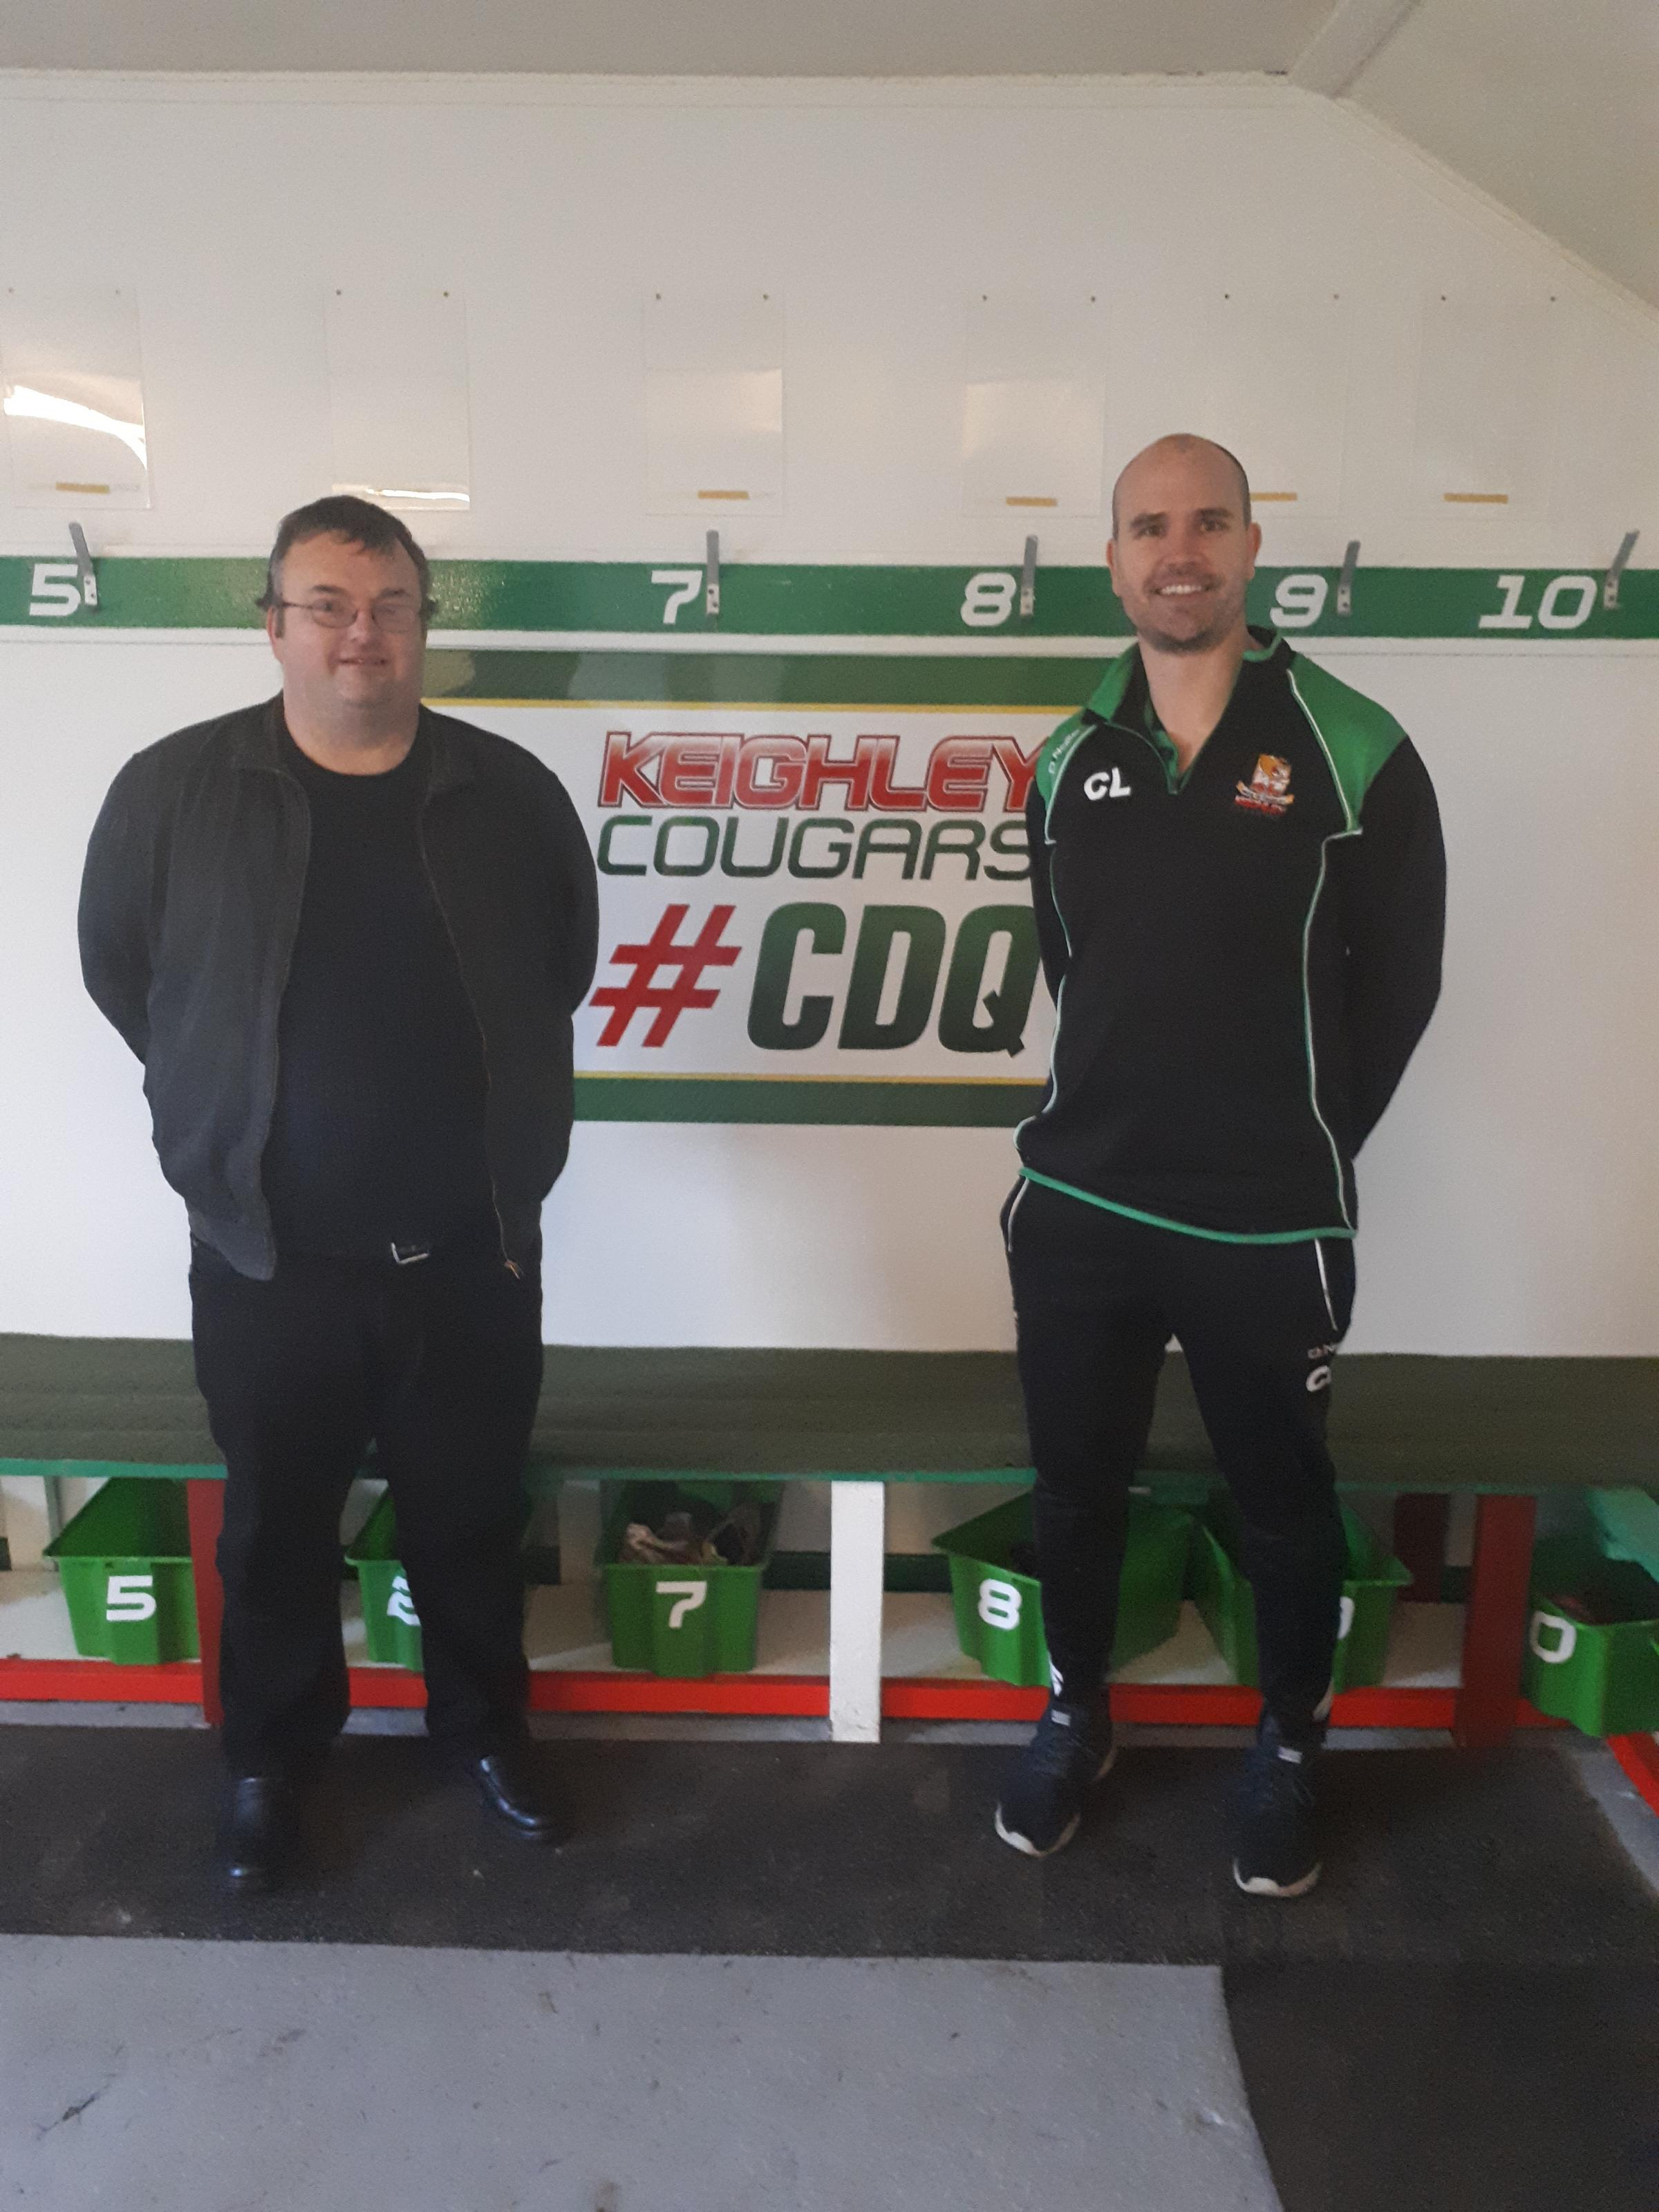 Canada Rugby League Association board member Darren Mabbott is pictured left with Cougars head coach Craig Lingard